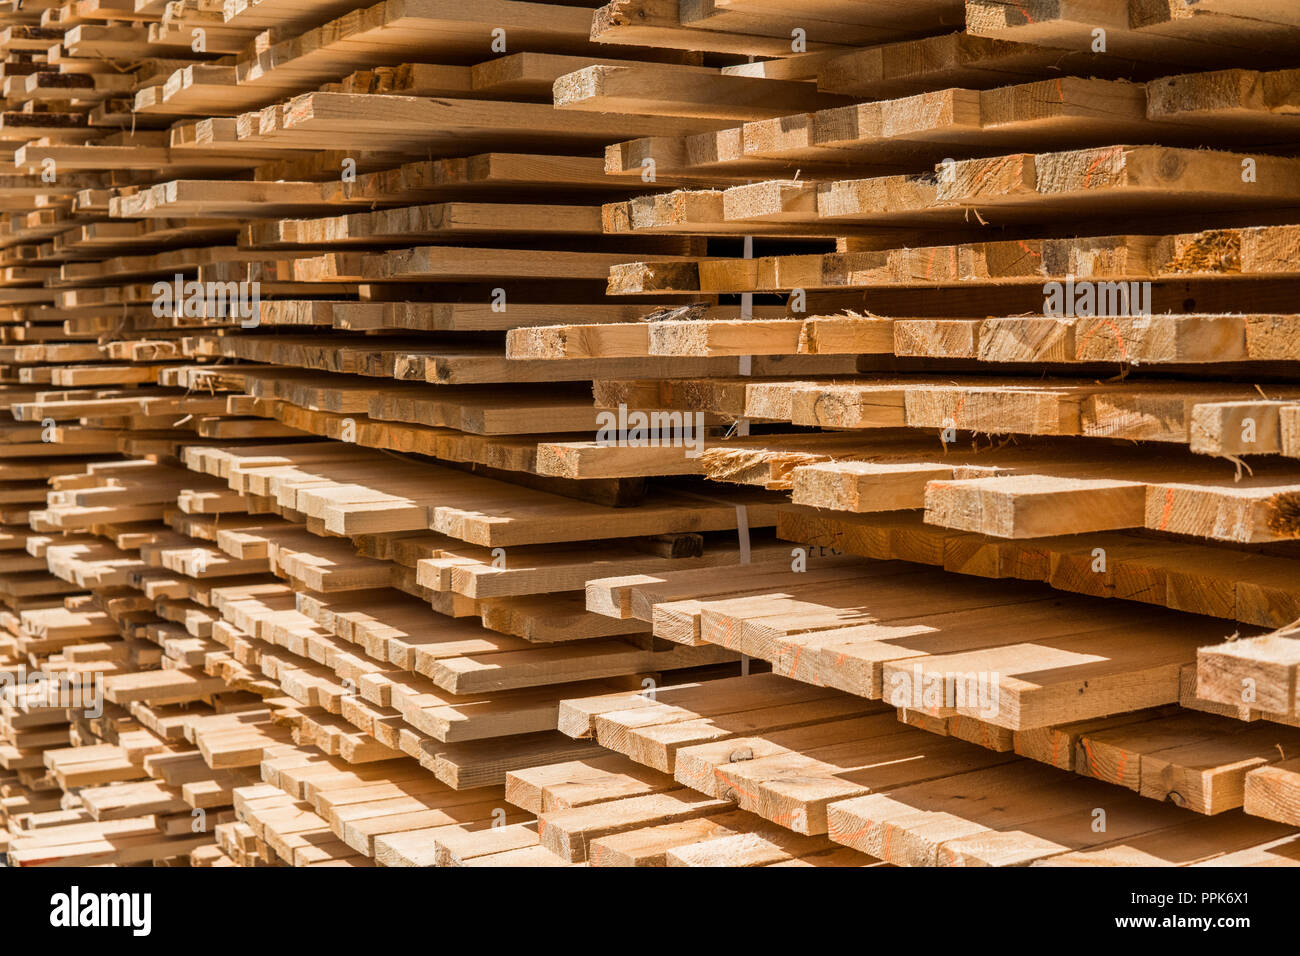 Piles of wooden boards in the sawmill, planking. Warehouse for sawing boards on a sawmill outdoors. Wood timber stack of wooden blanks construction material. Industry. Stock Photo